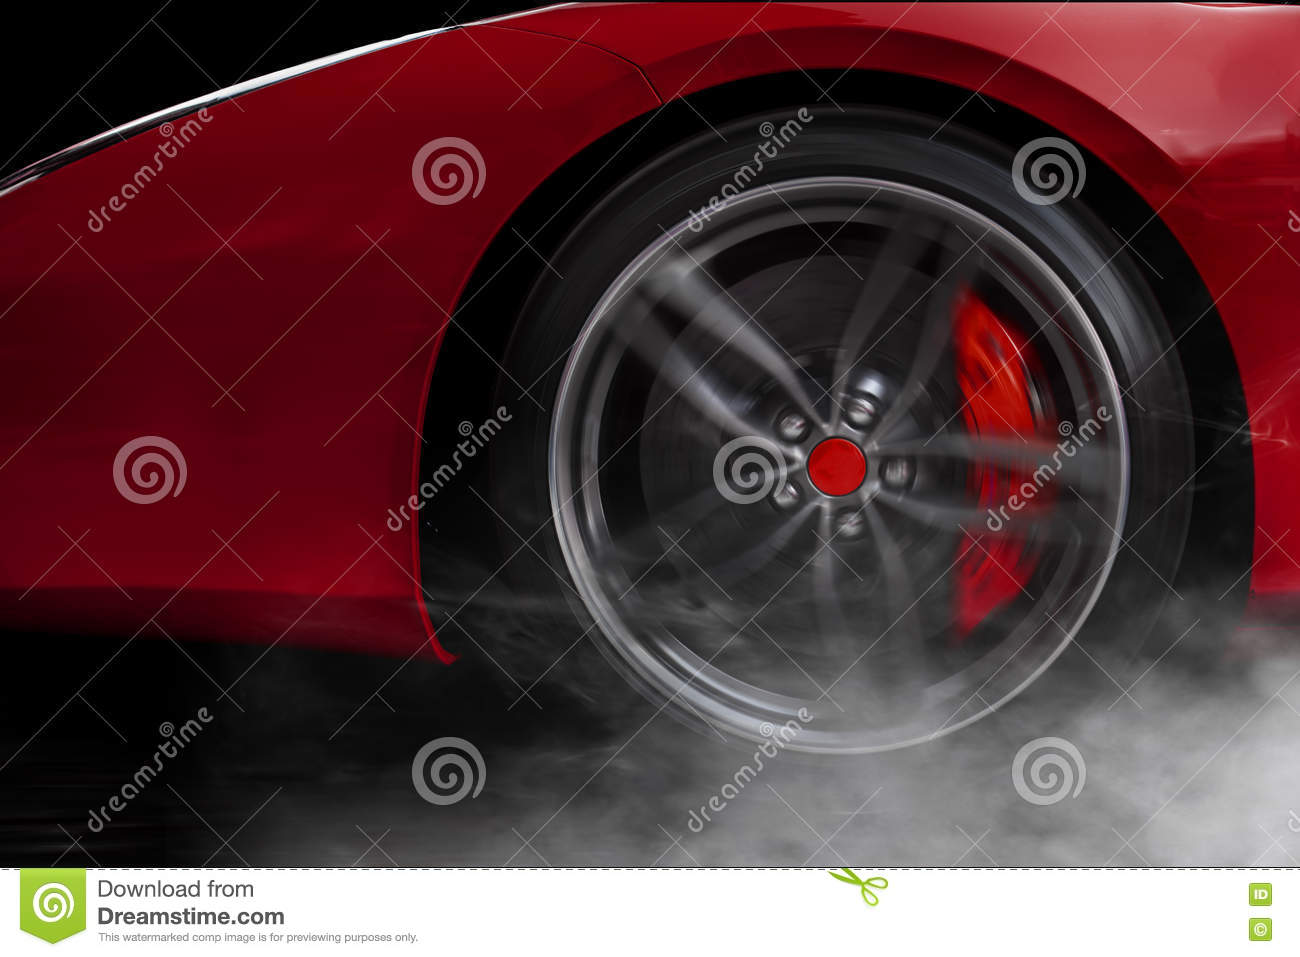 Isolated generic red sport car with detail on wheel with red breaks drifting and smoking on a dark background